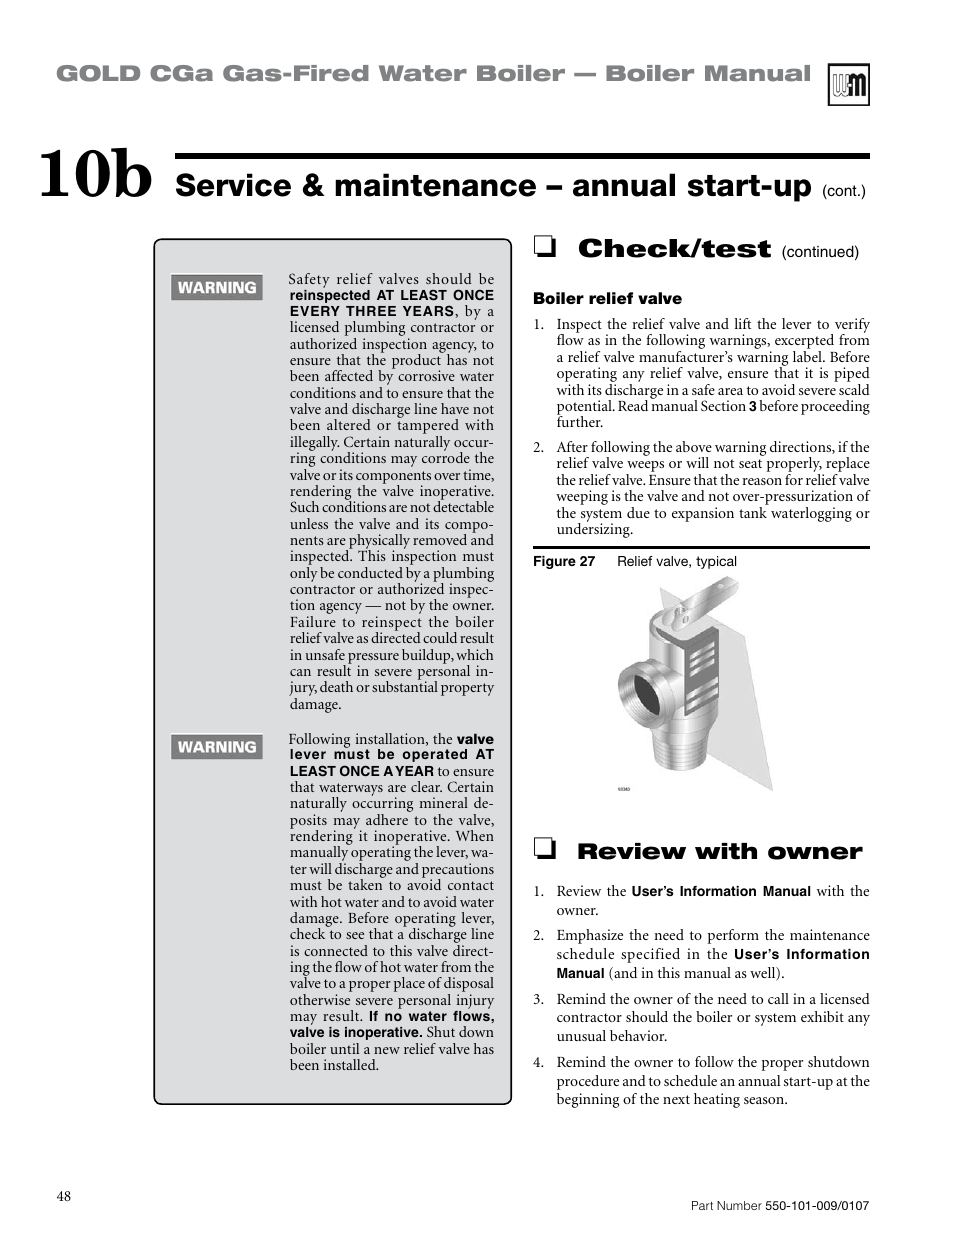 Service & maintenance – annual start-up, Check/test, Gold cga gas ...